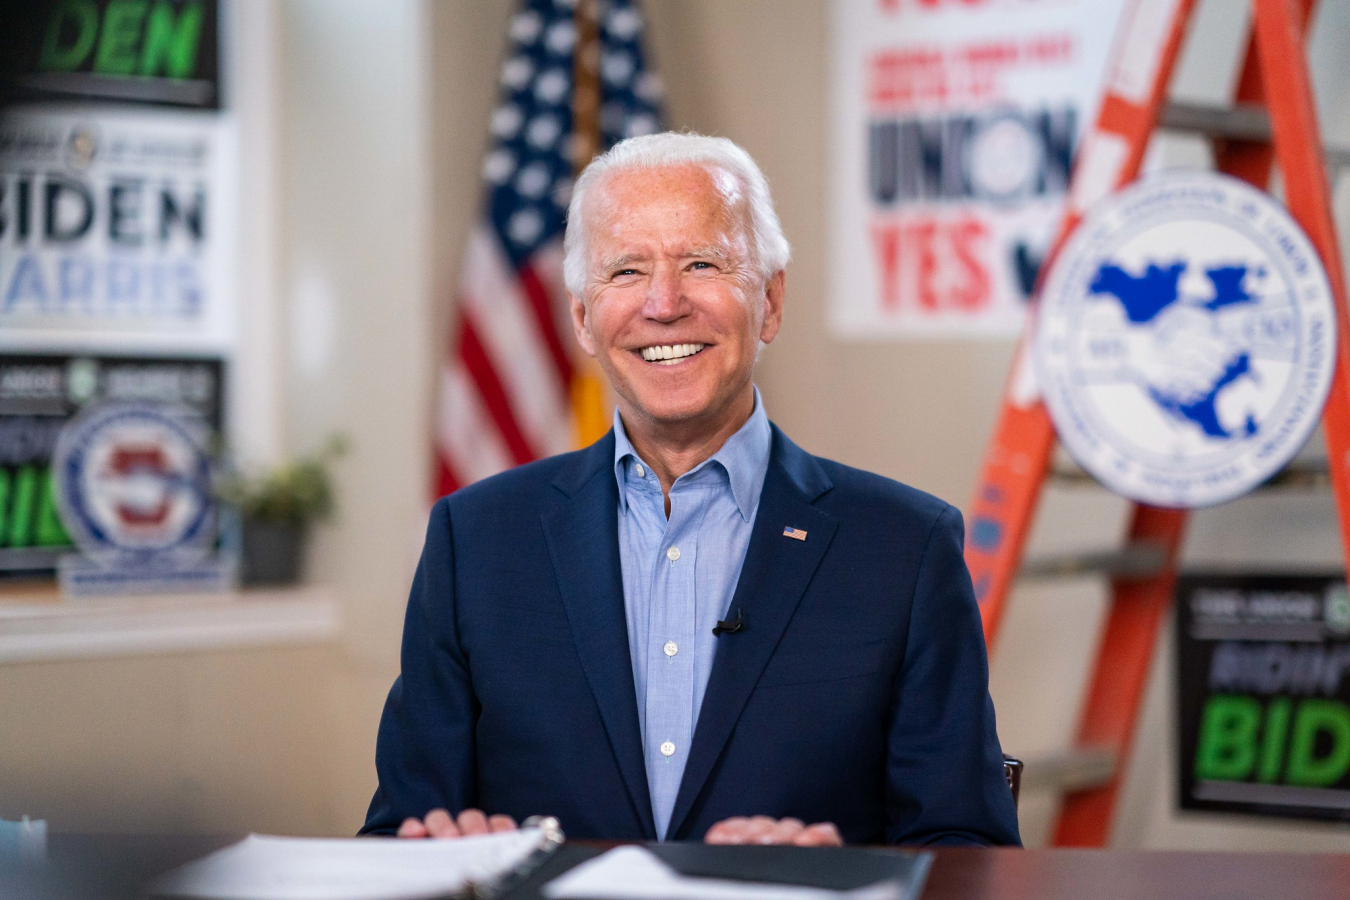 Joe Biden Democrat Presidential Candidate - Harrisburg, PA - September 7, 2020